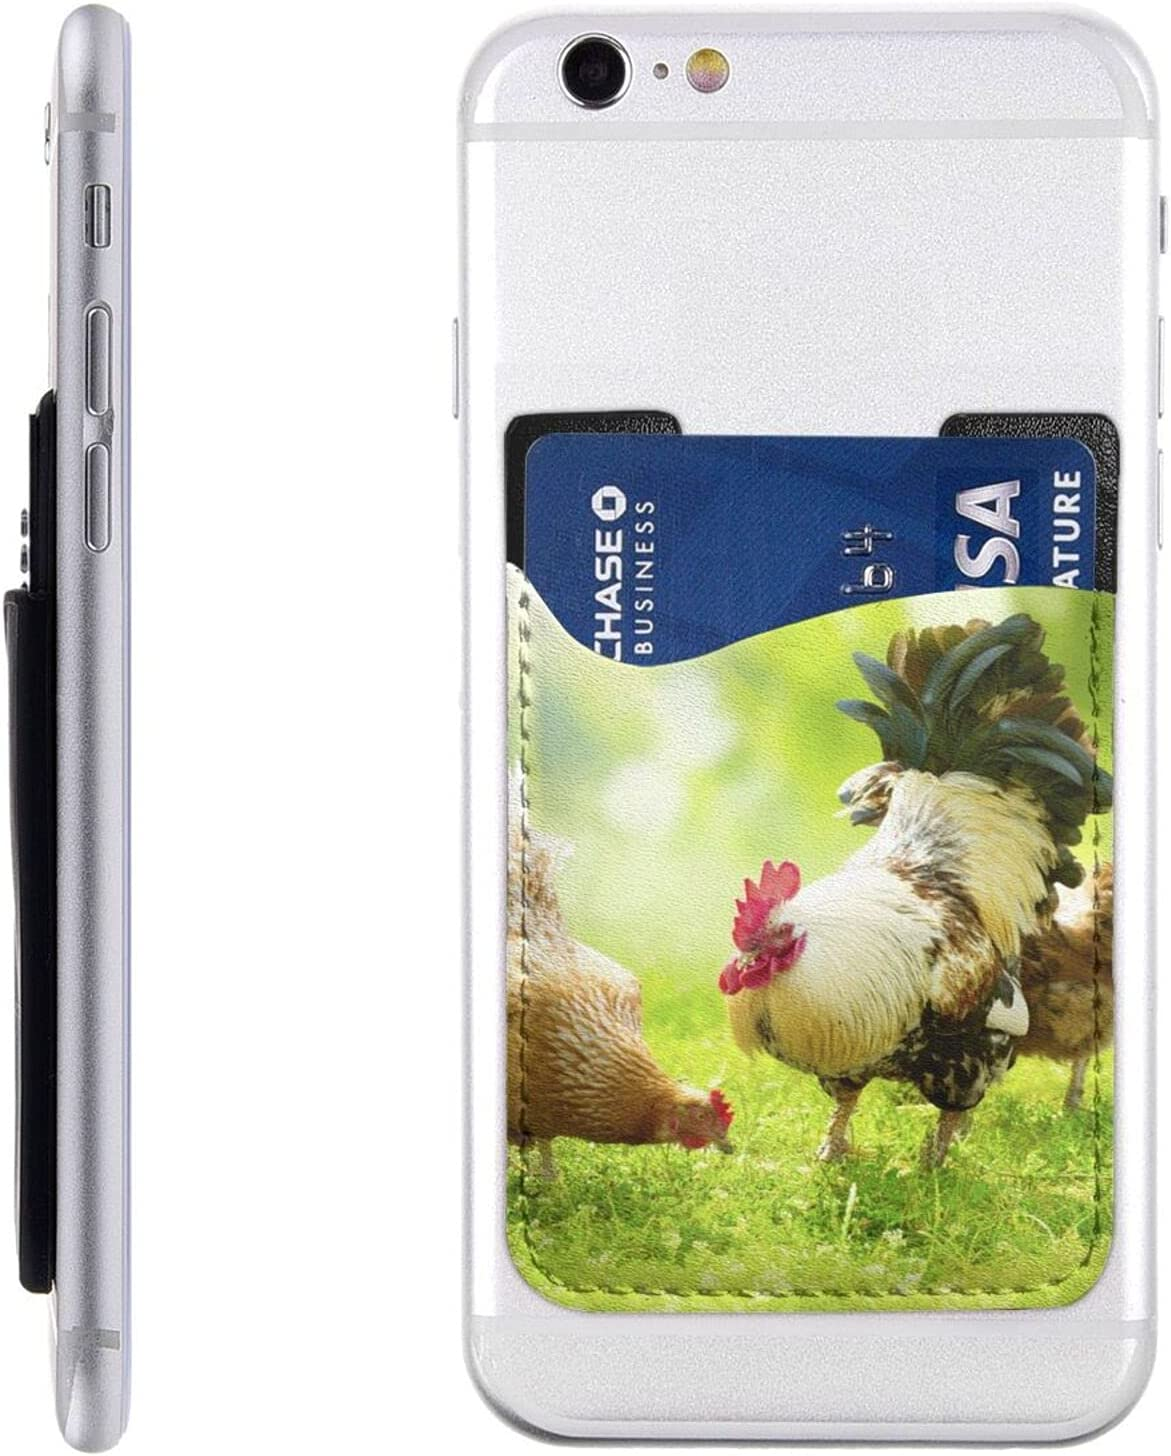 Beautiful Rooster Hen Max 43% OFF Phone Card On Holder Long Beach Mall Cell Stick